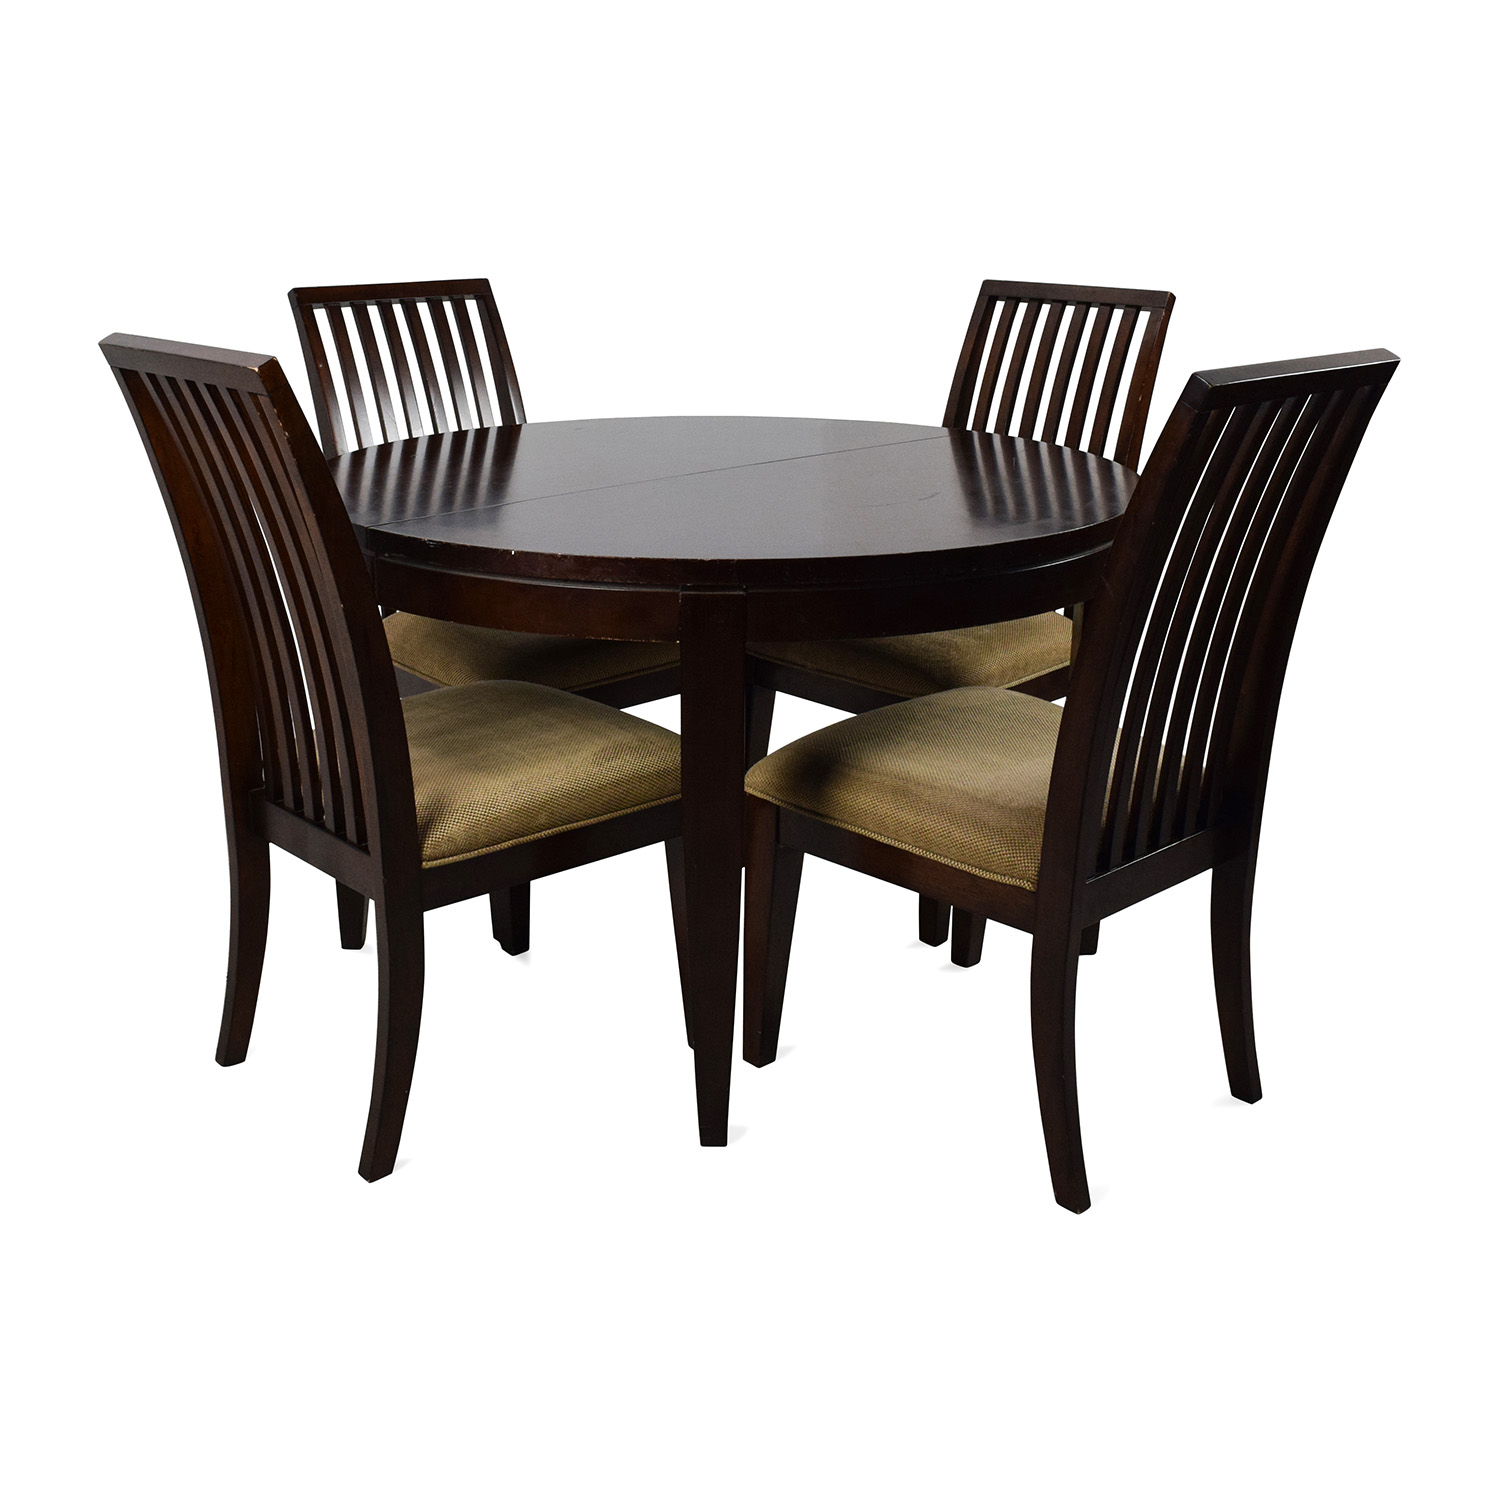 75 Off Macy S Macy S Bradford Extendable Dining Table With 4